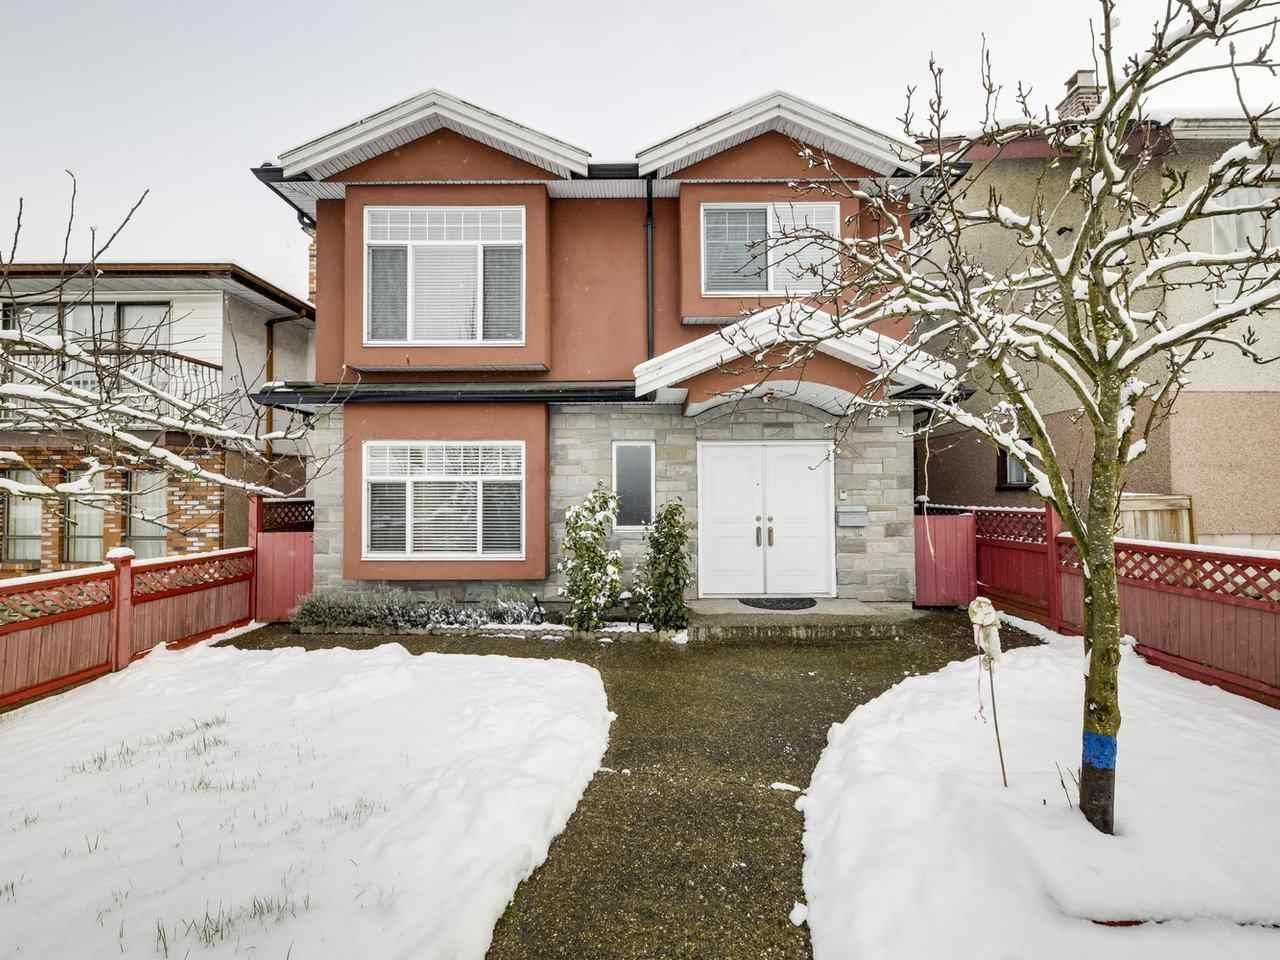 Main Photo: 4344 VICTORIA Drive in Vancouver: Victoria VE House for sale (Vancouver East)  : MLS®# R2548310